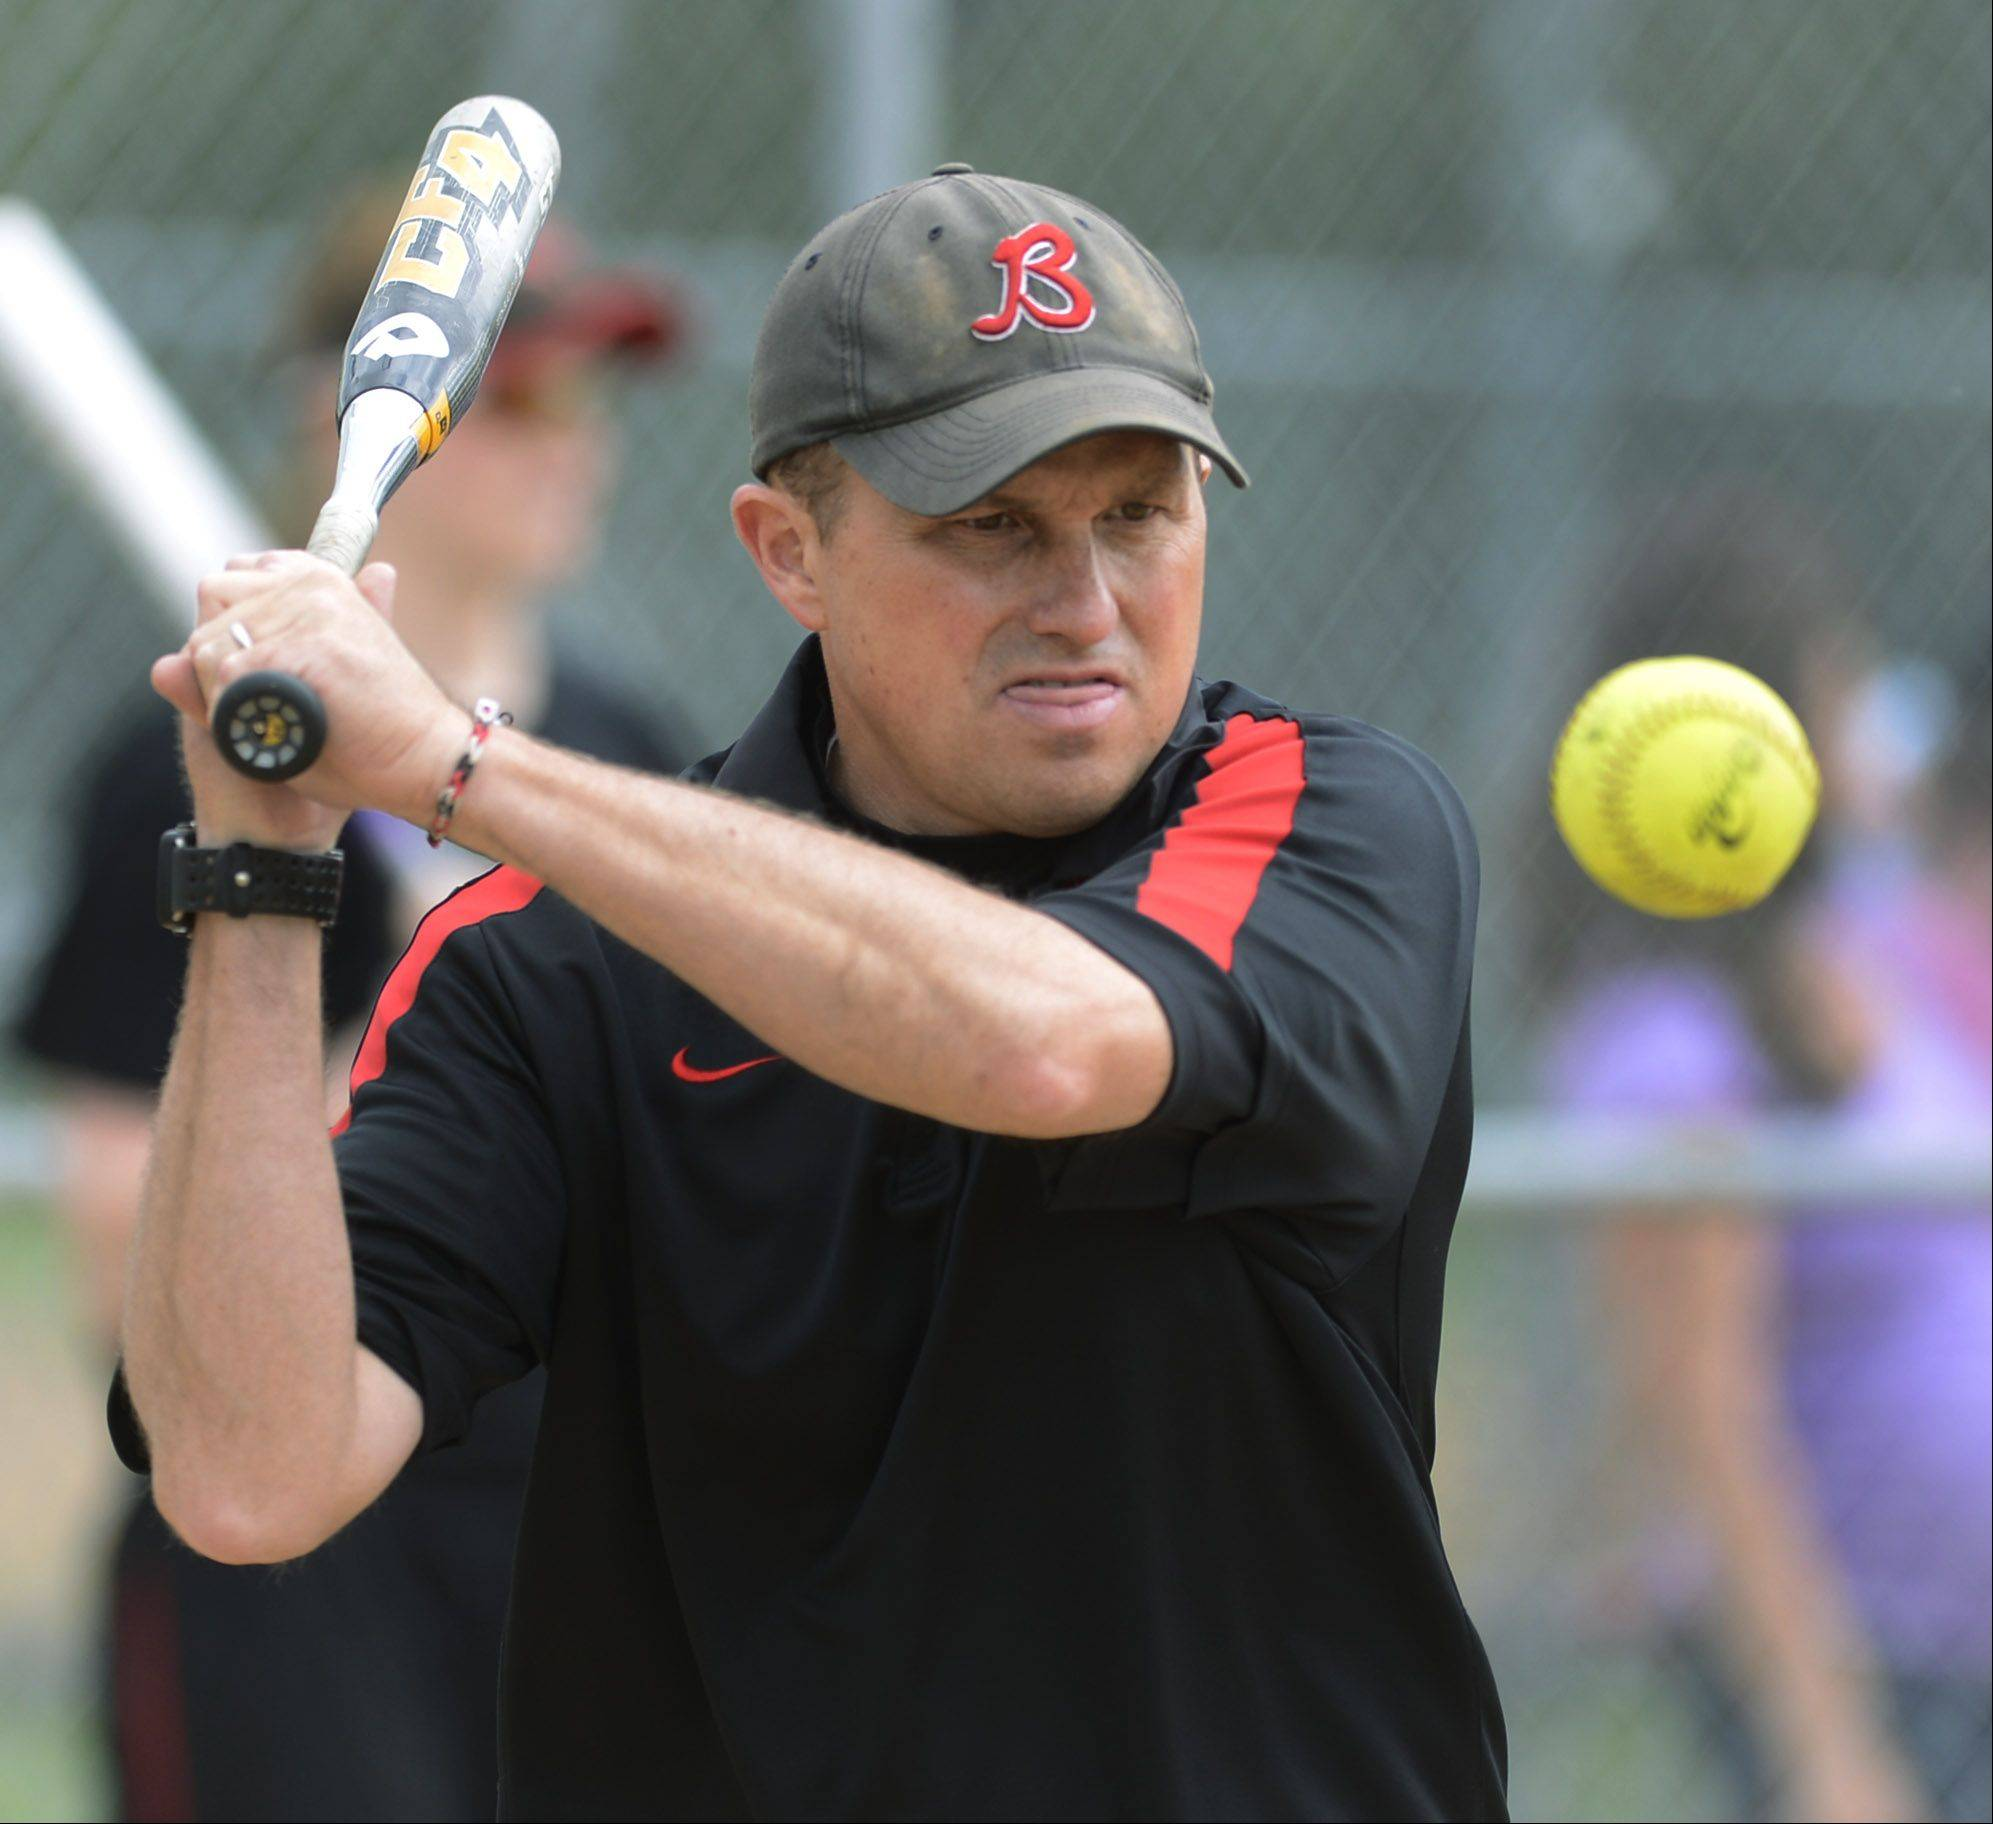 Barrington softball coach Perry Peterson hits ground balls during infield warm-ups before the Fillies' sectional final victory over New Trier.